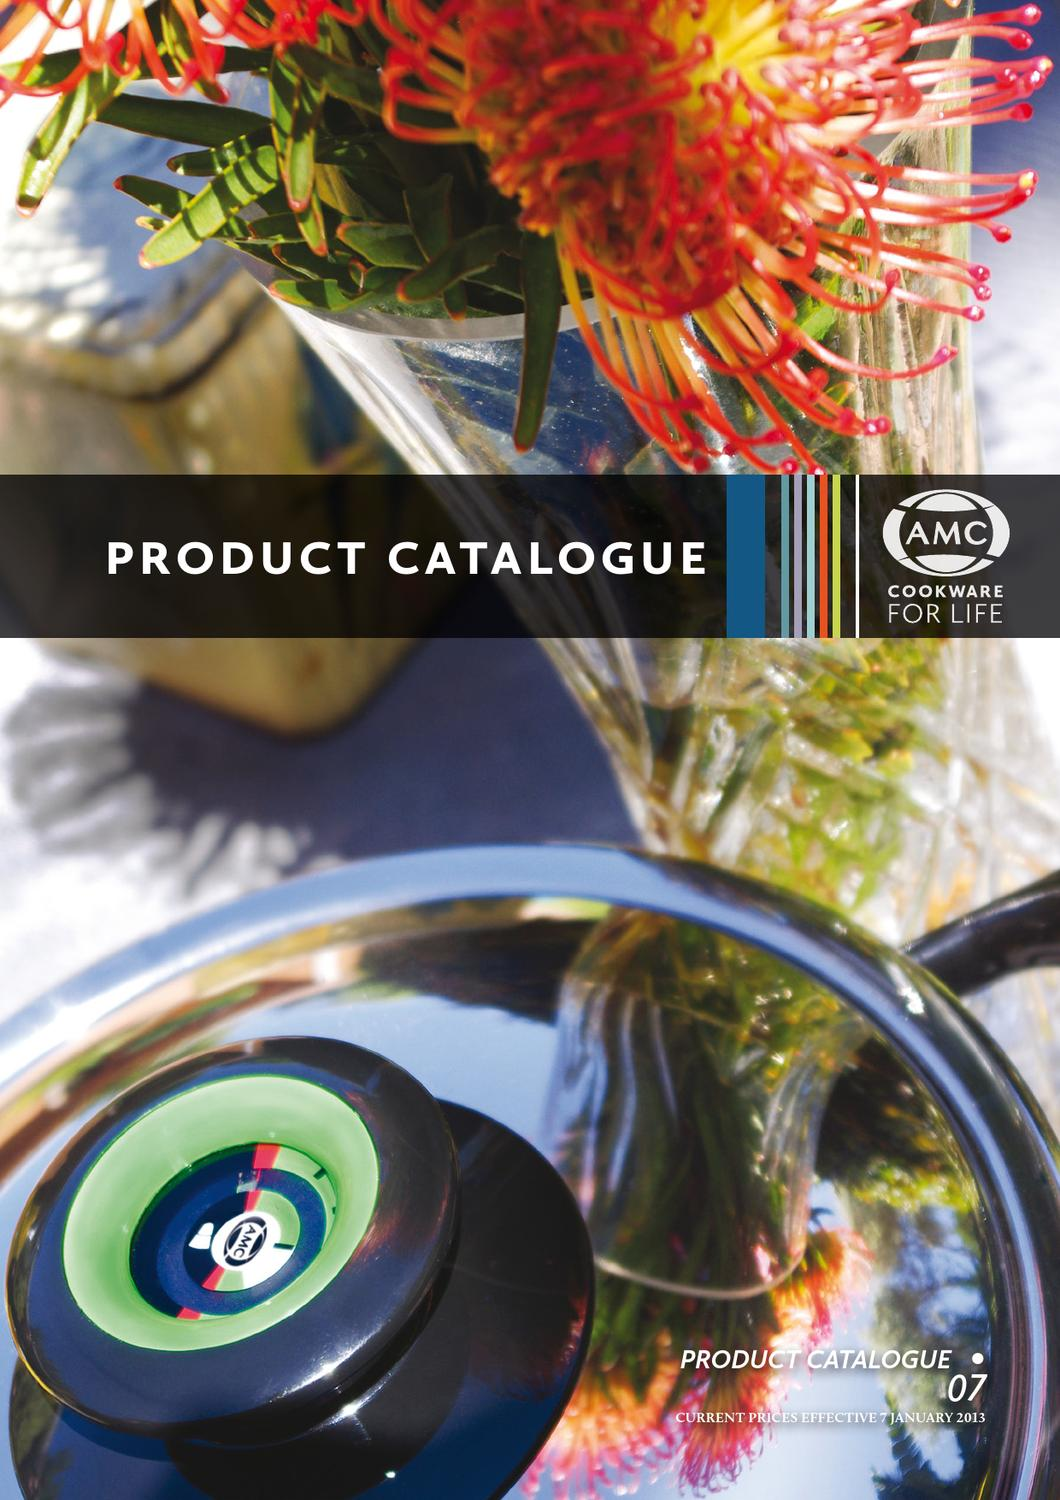 2013 AMC Product Catalogue • 07 by AMC Cookware - issuu